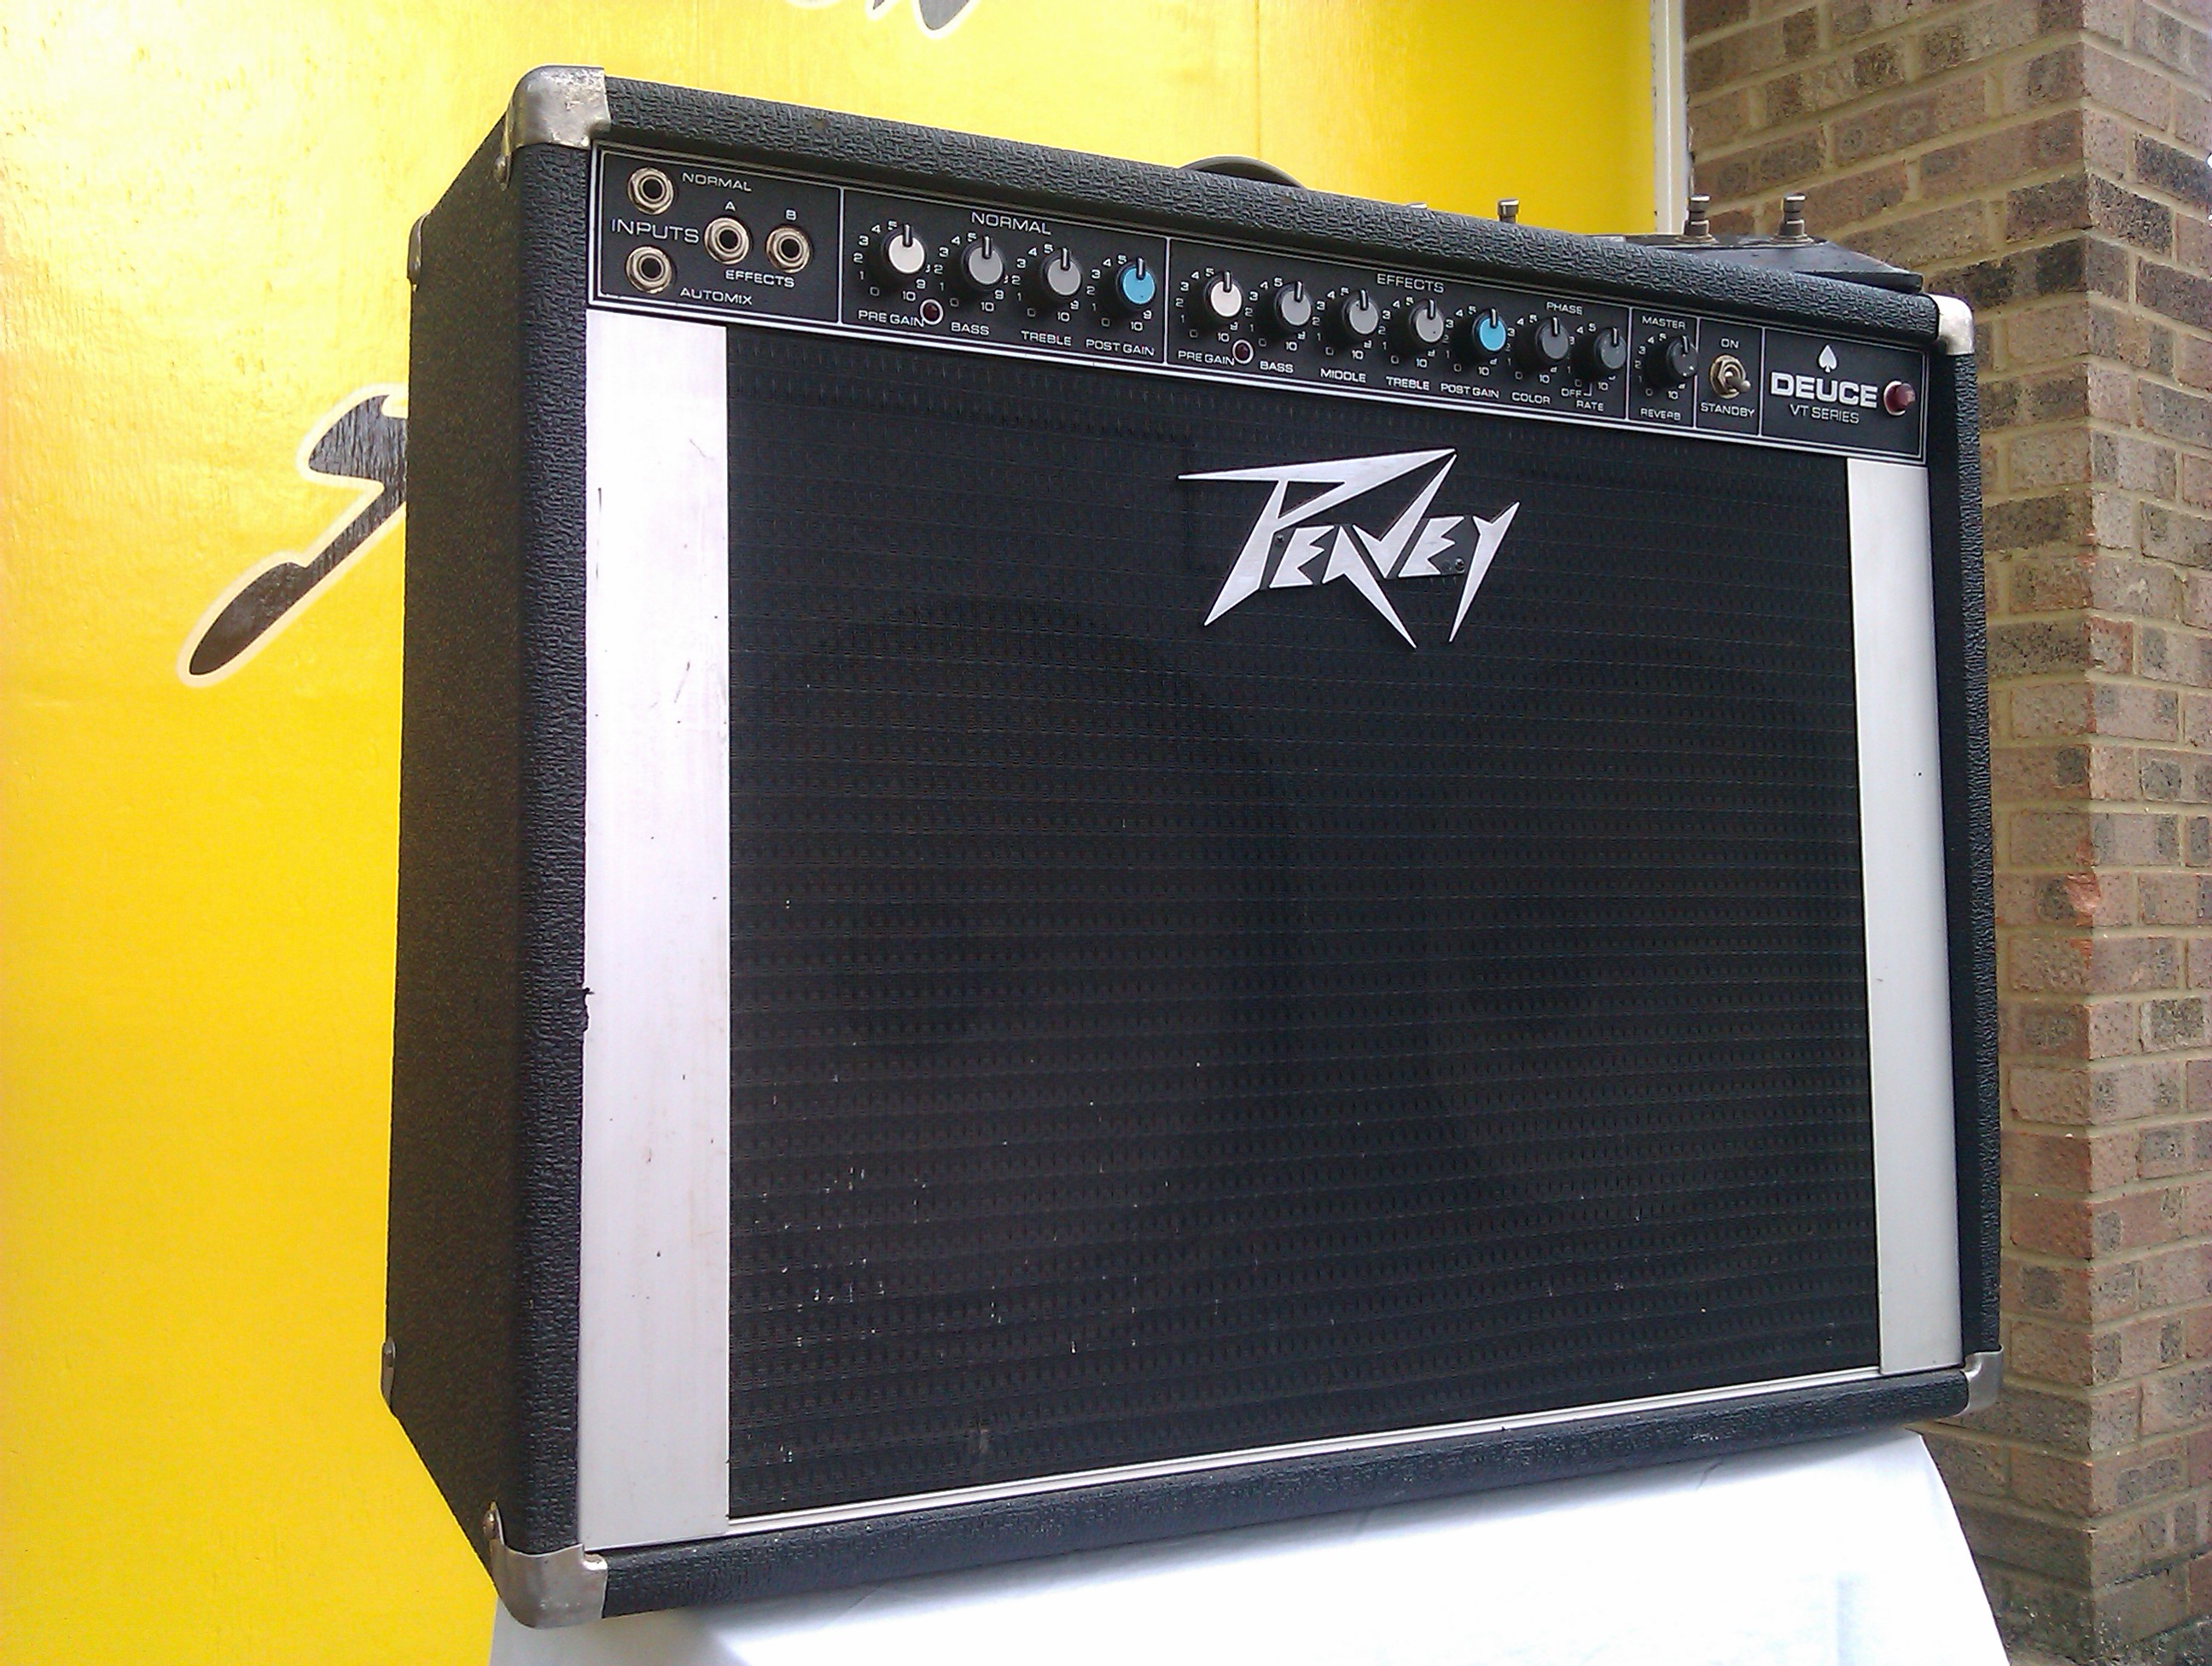 Sadly under-rated amp, with great tone and power capability